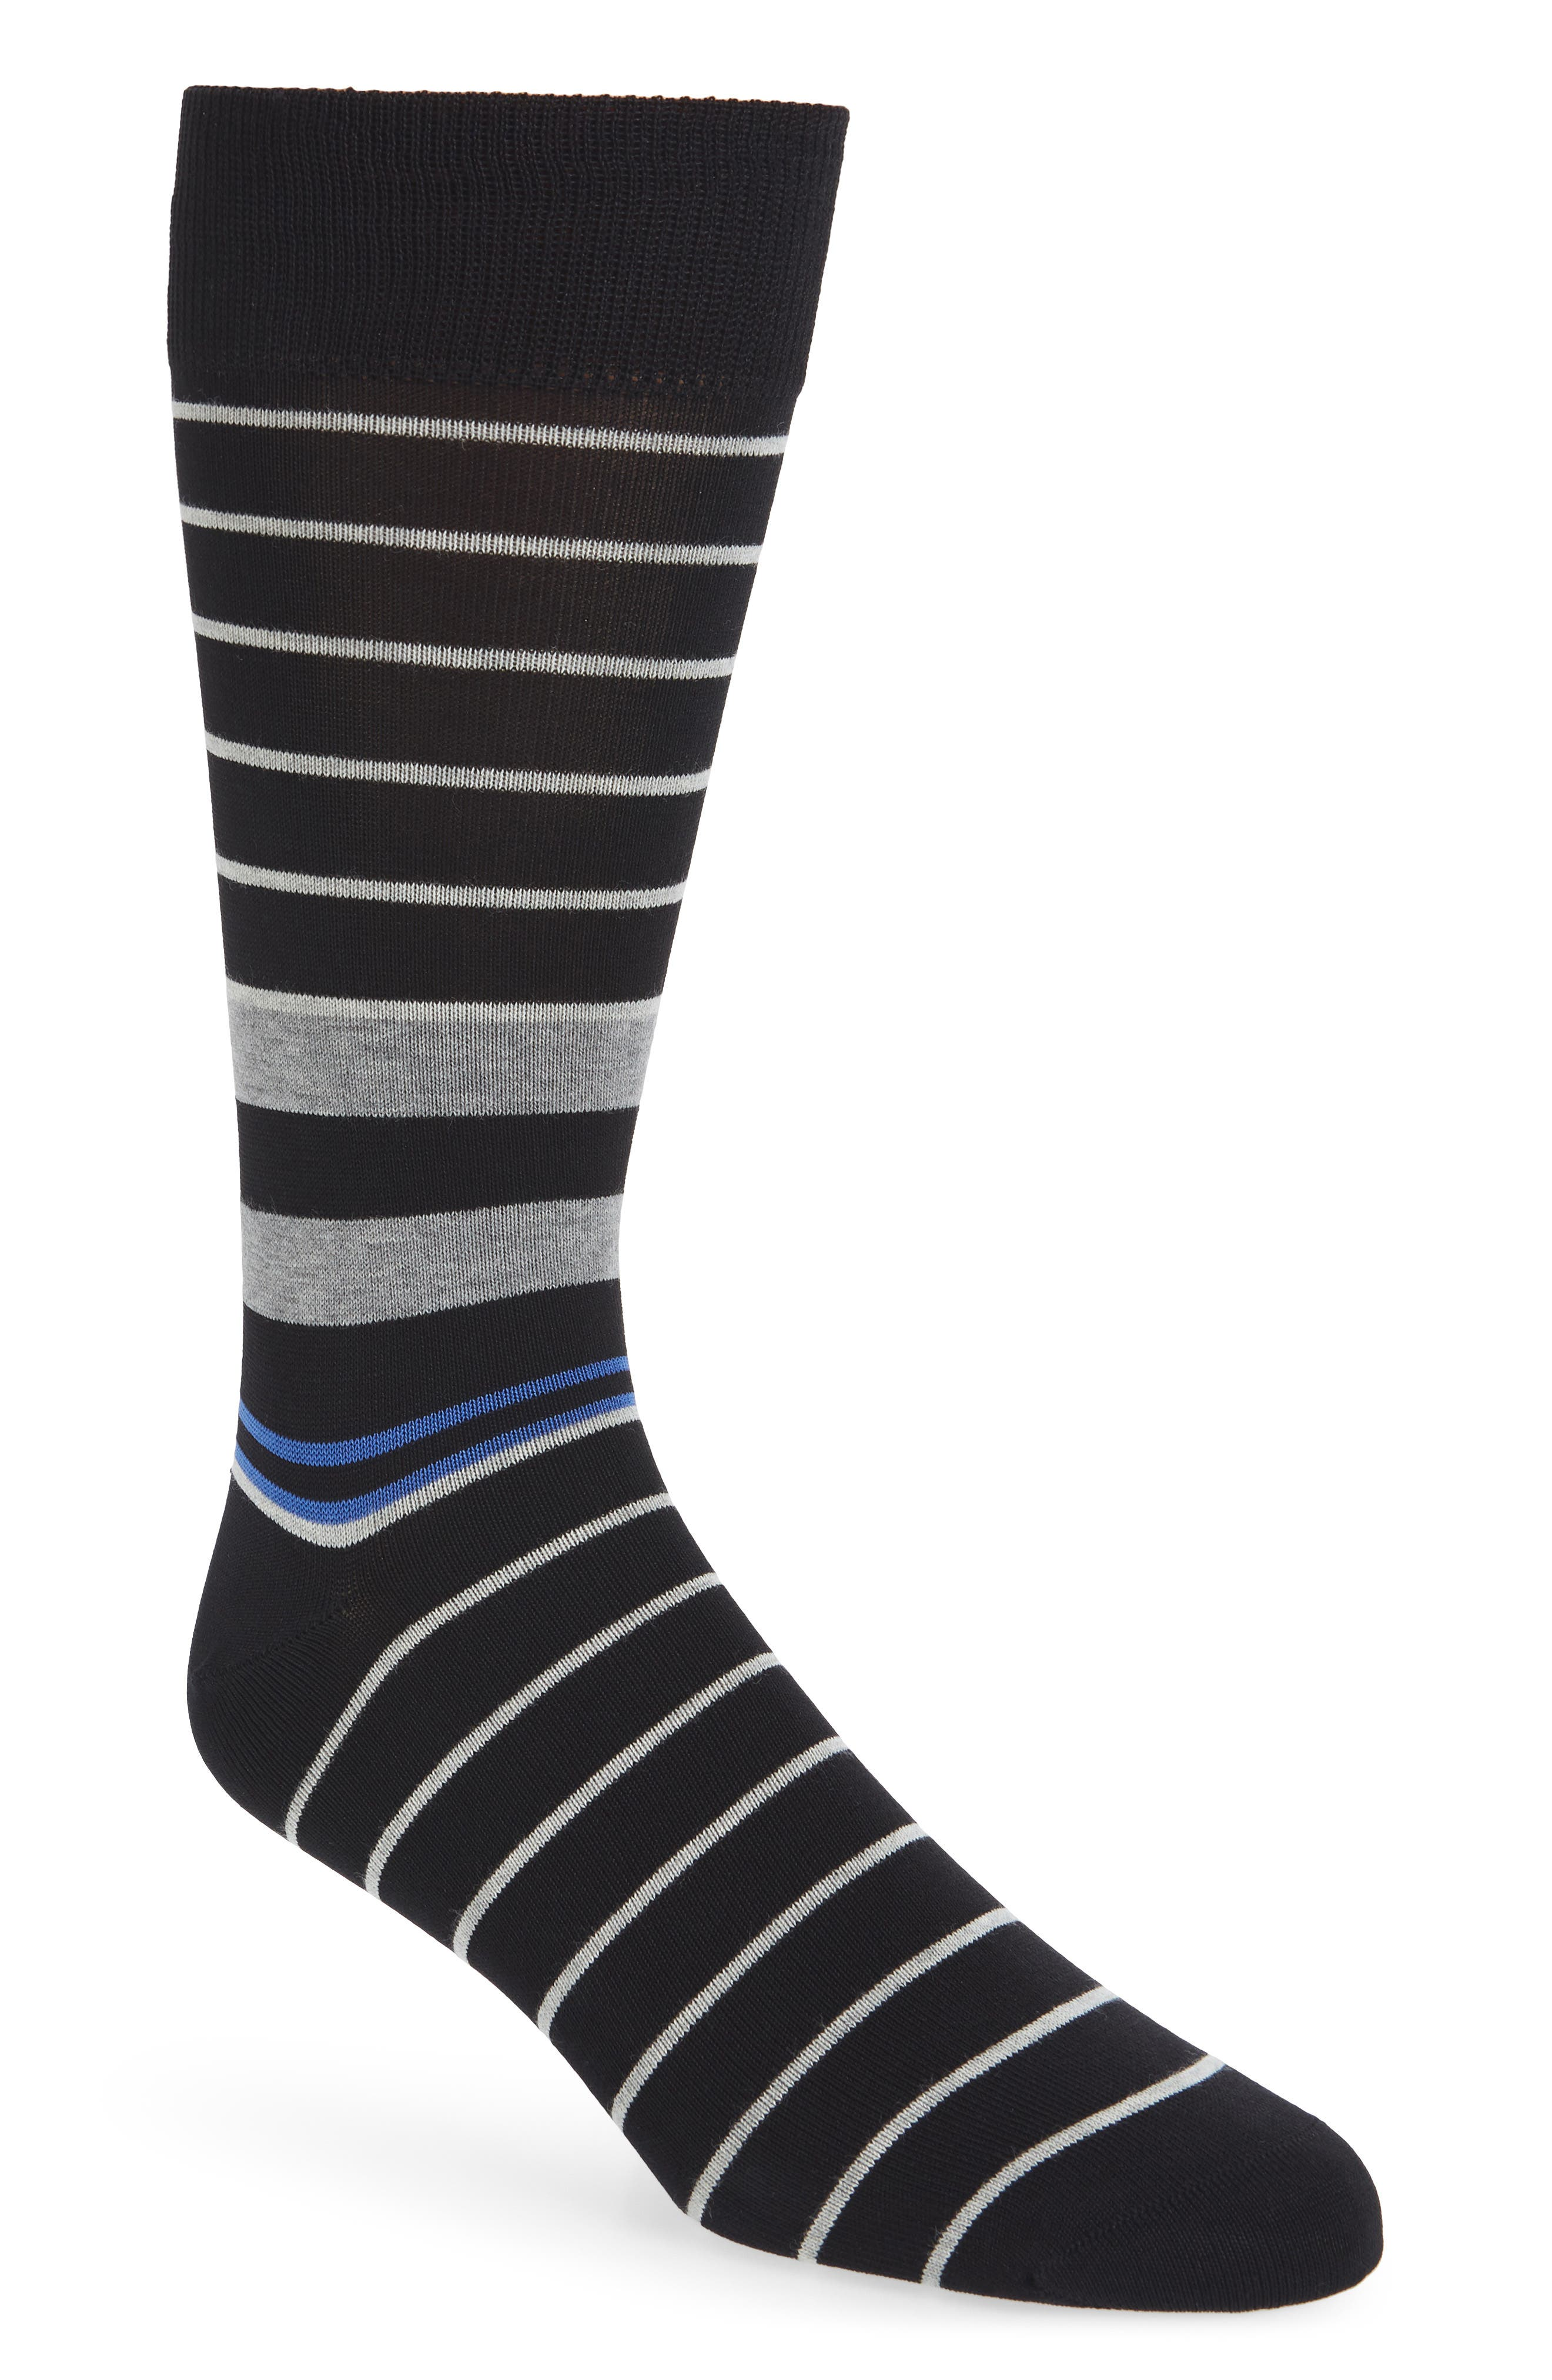 Mens Boot Socks nautical navy anchor stripe Athletic Non-Slid Painting